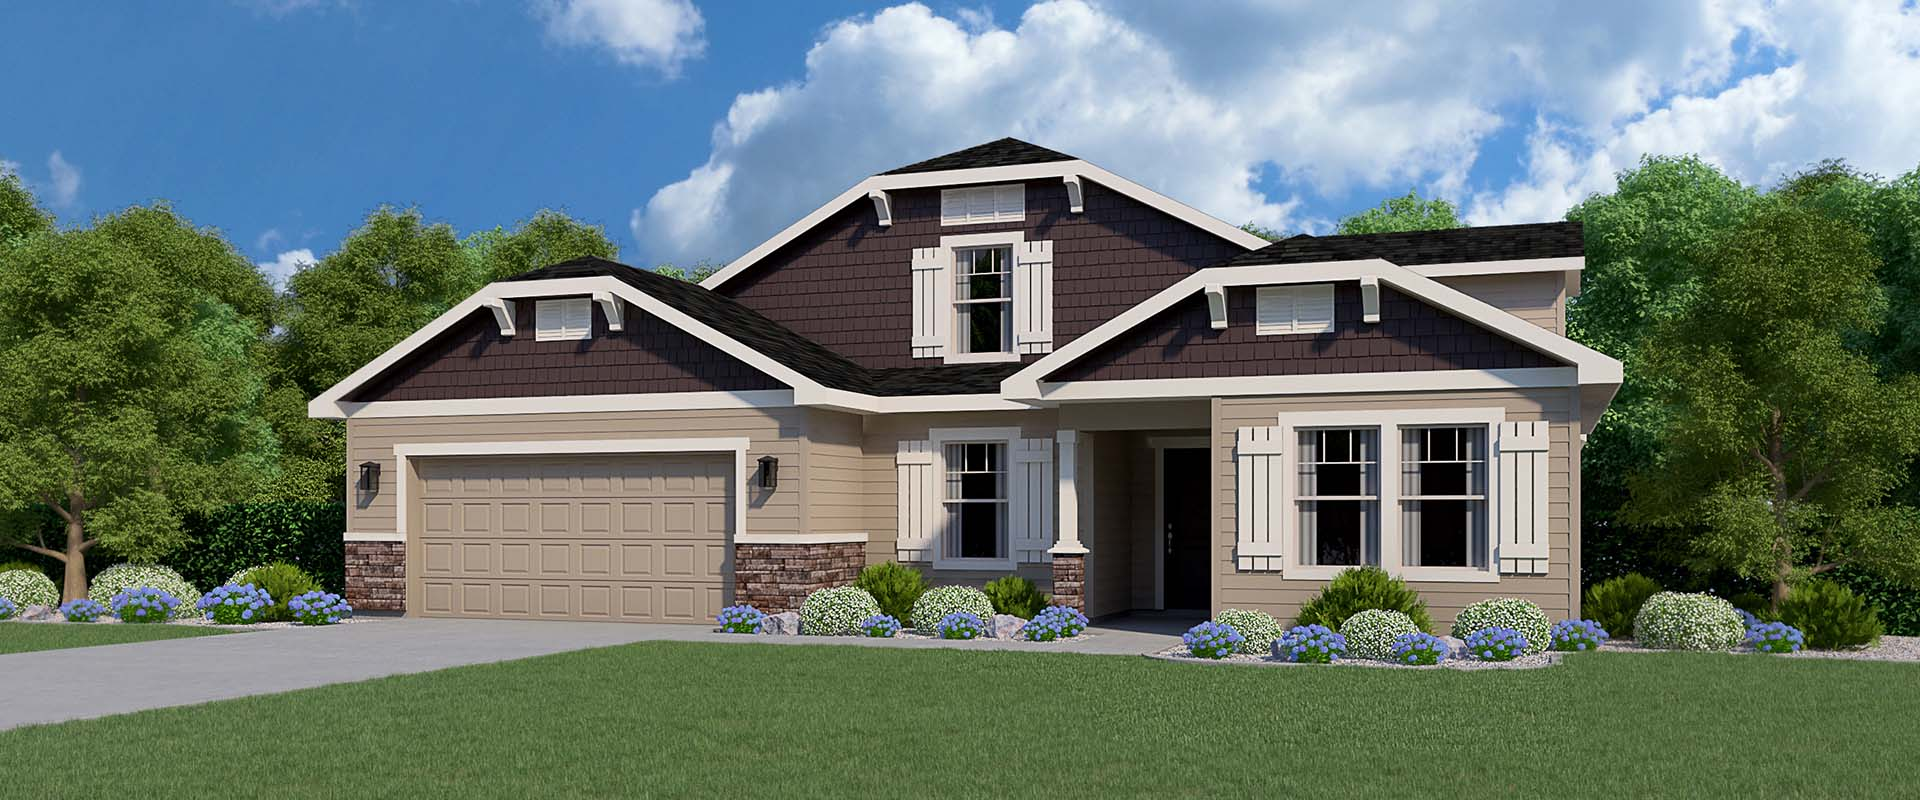 new-homes-boise-idaho-hubble-homes_0021_Opal Bonus Heritage pack 64.jpg